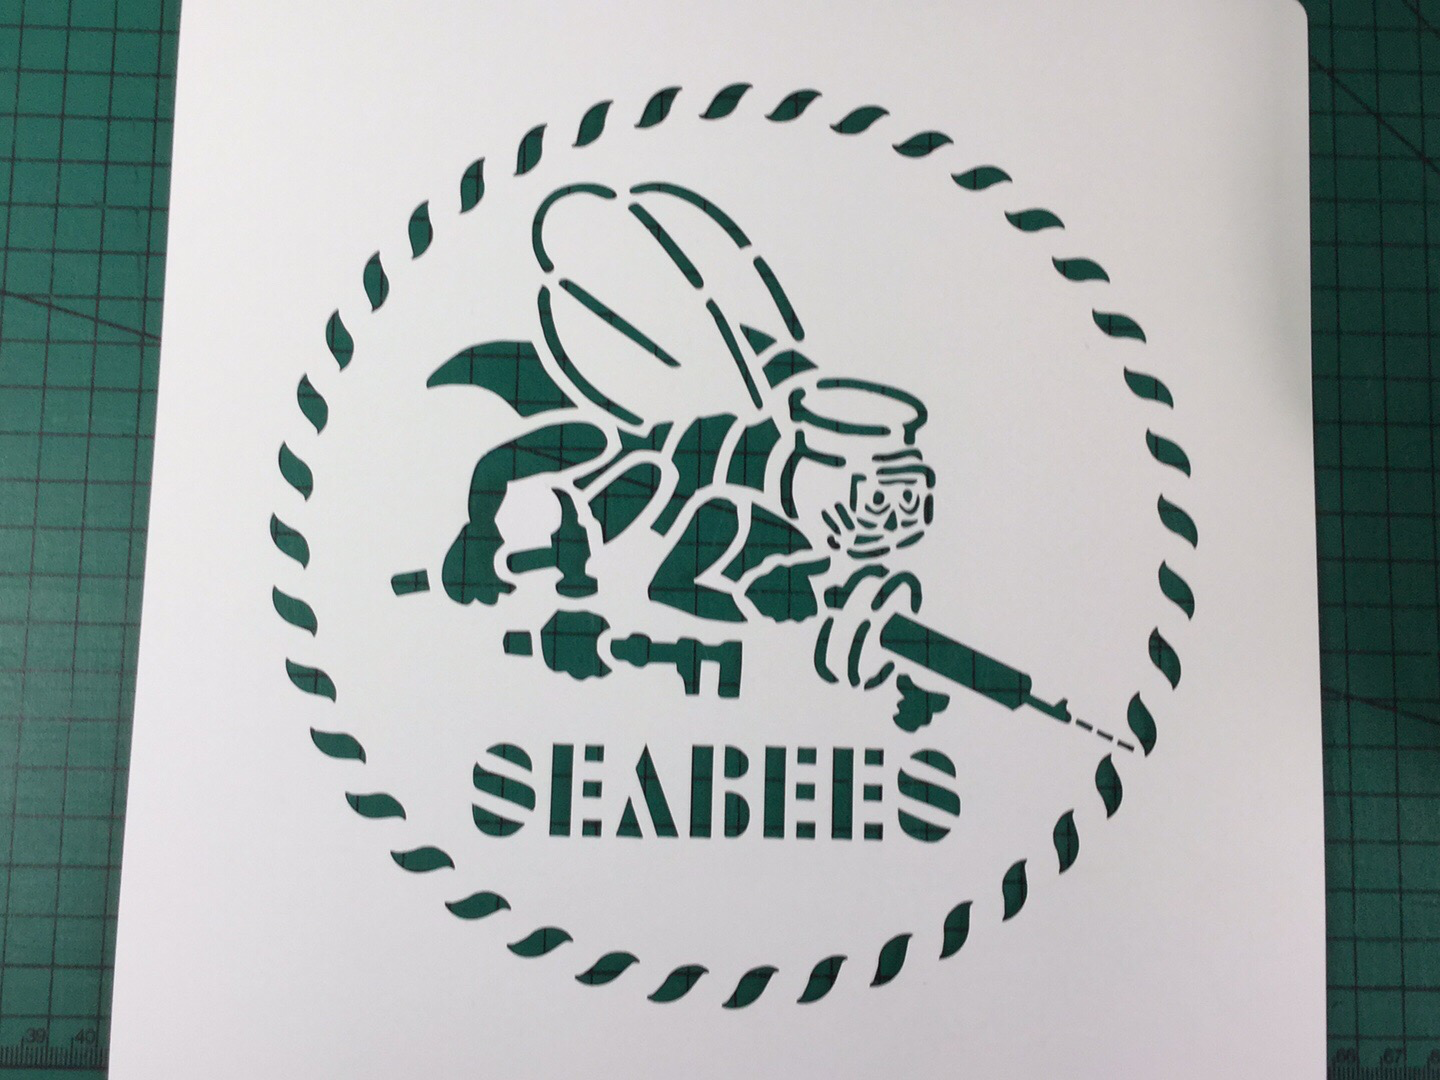 Seabees logo stencil set for reenactors ww2 wartime prop